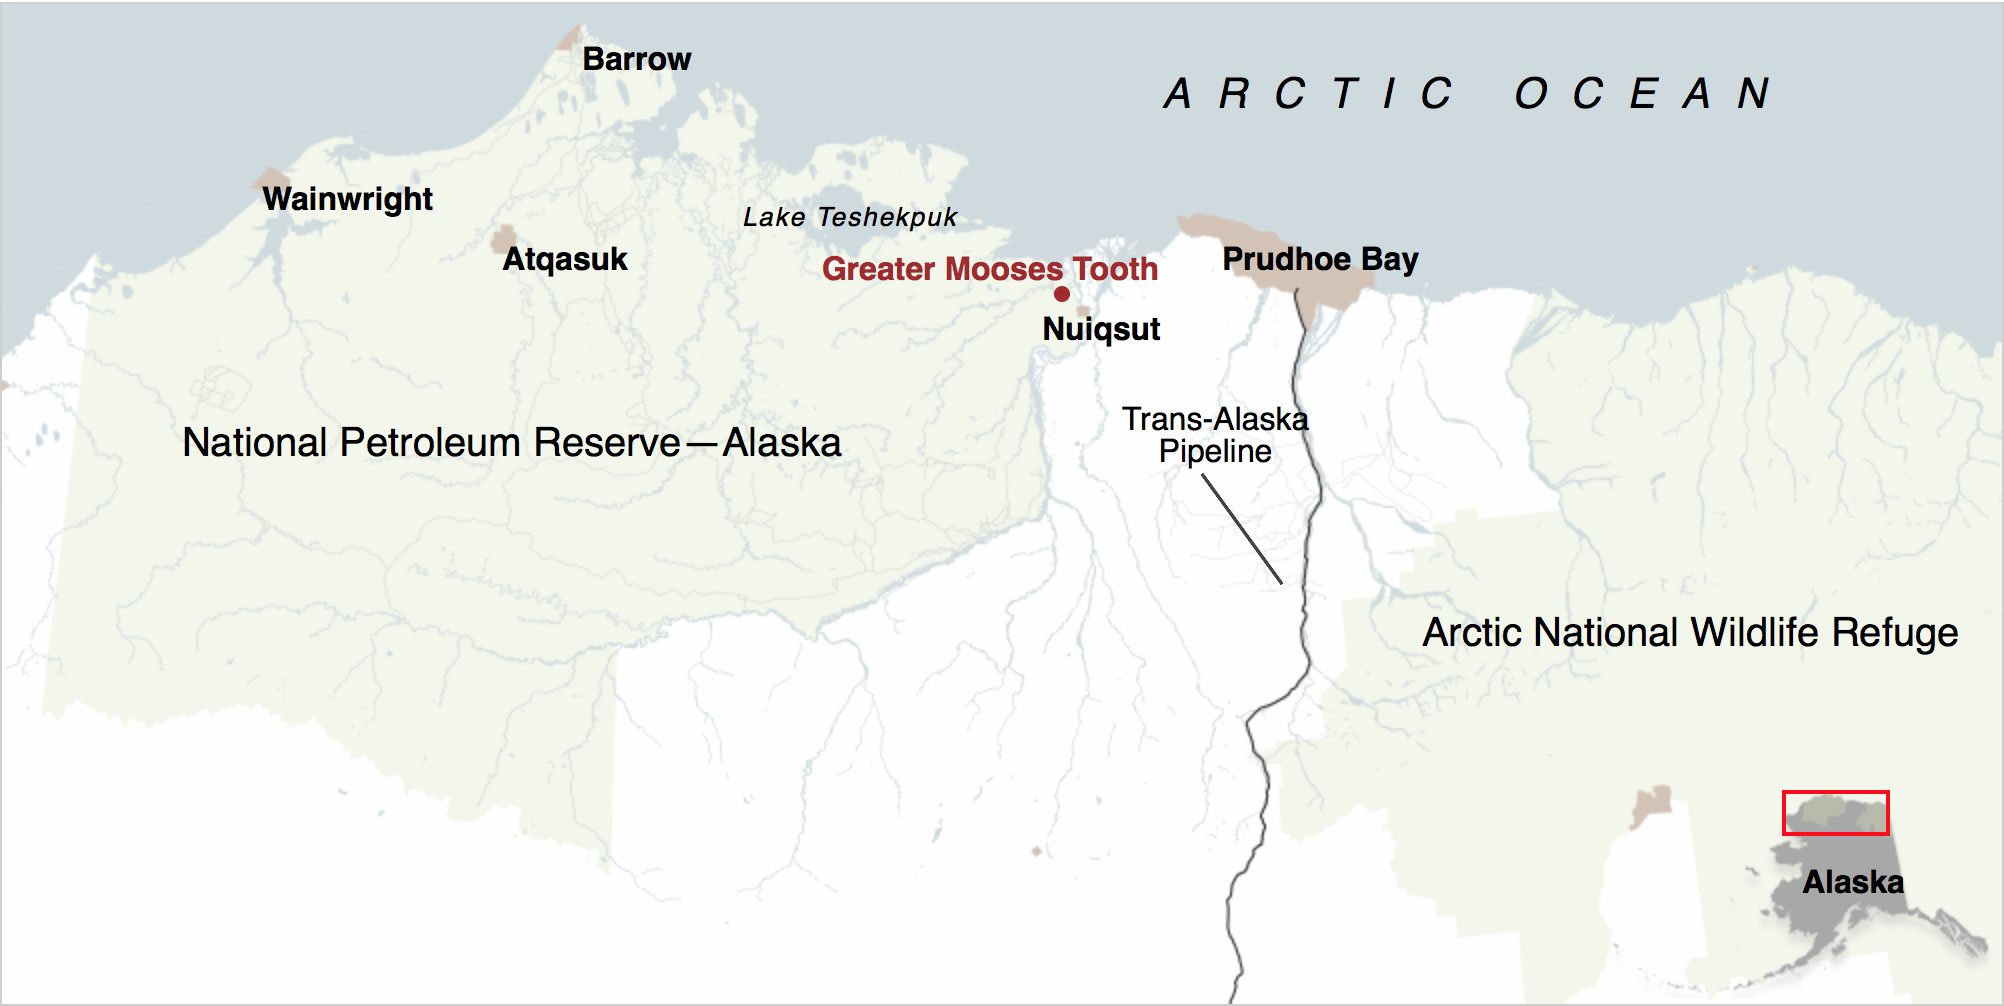 At 23 million acres, the National Petroleum Reserve-Alaska is even larger than the better-known Arctic National Wildlife Refuge. It is home to one of world's largest caribou herds and huge flocks of migratory birds.